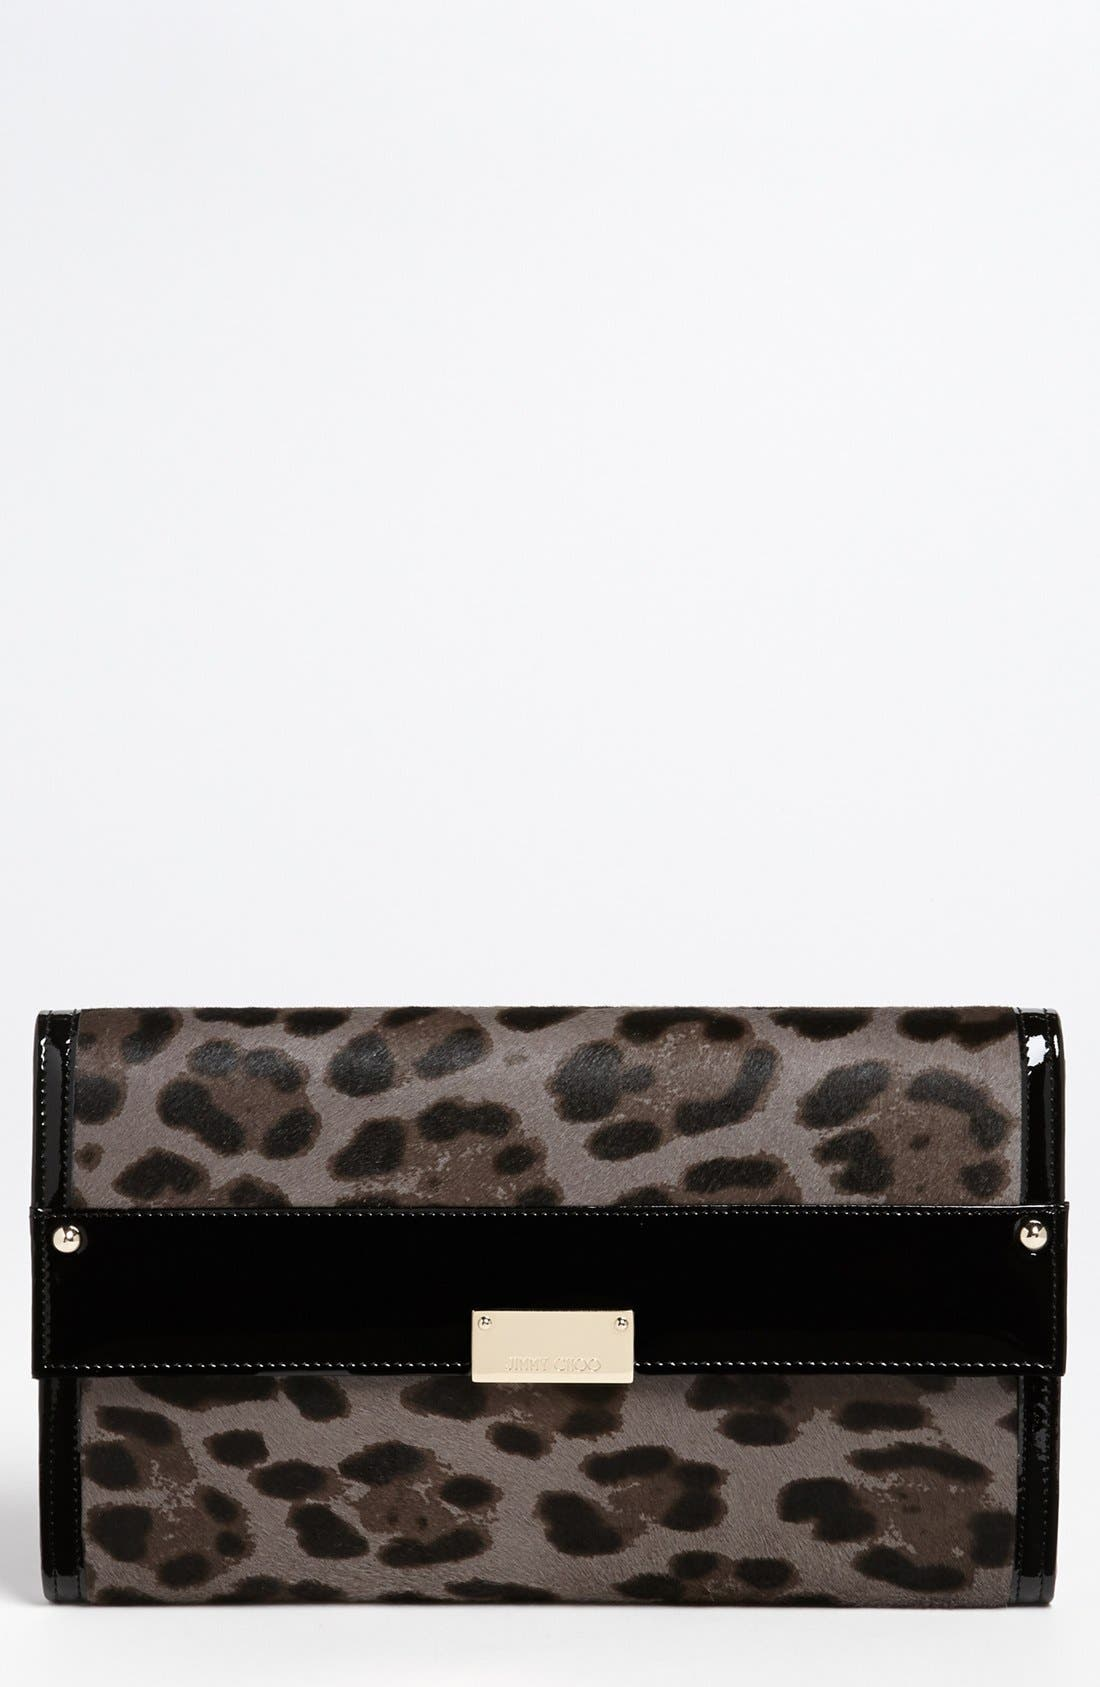 Alternate Image 1 Selected - Jimmy Choo 'Reese - Extra Large' Leopard Print Calf Hair Clutch